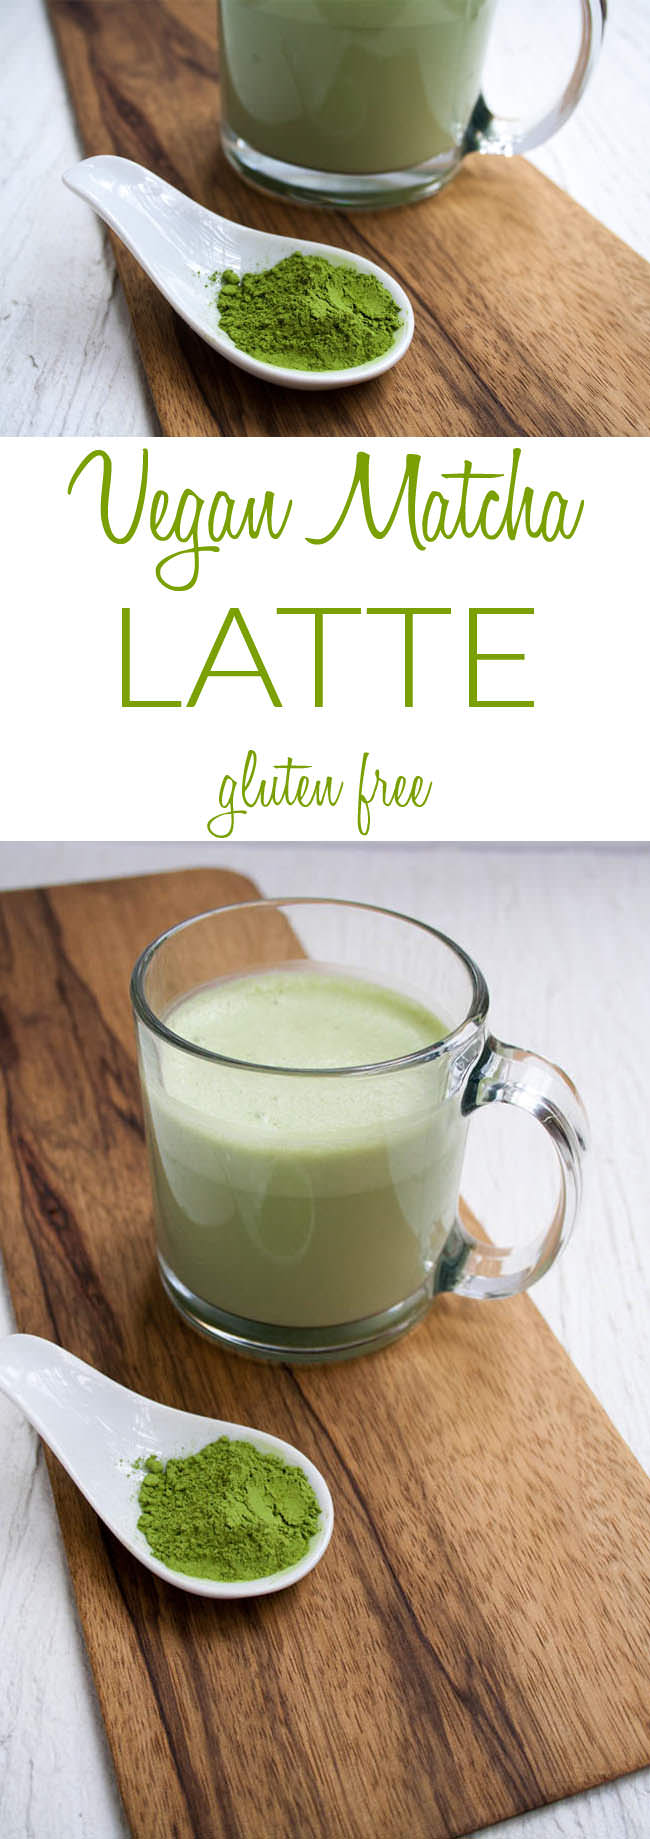 Vegan Matcha Latte collage photo with text.